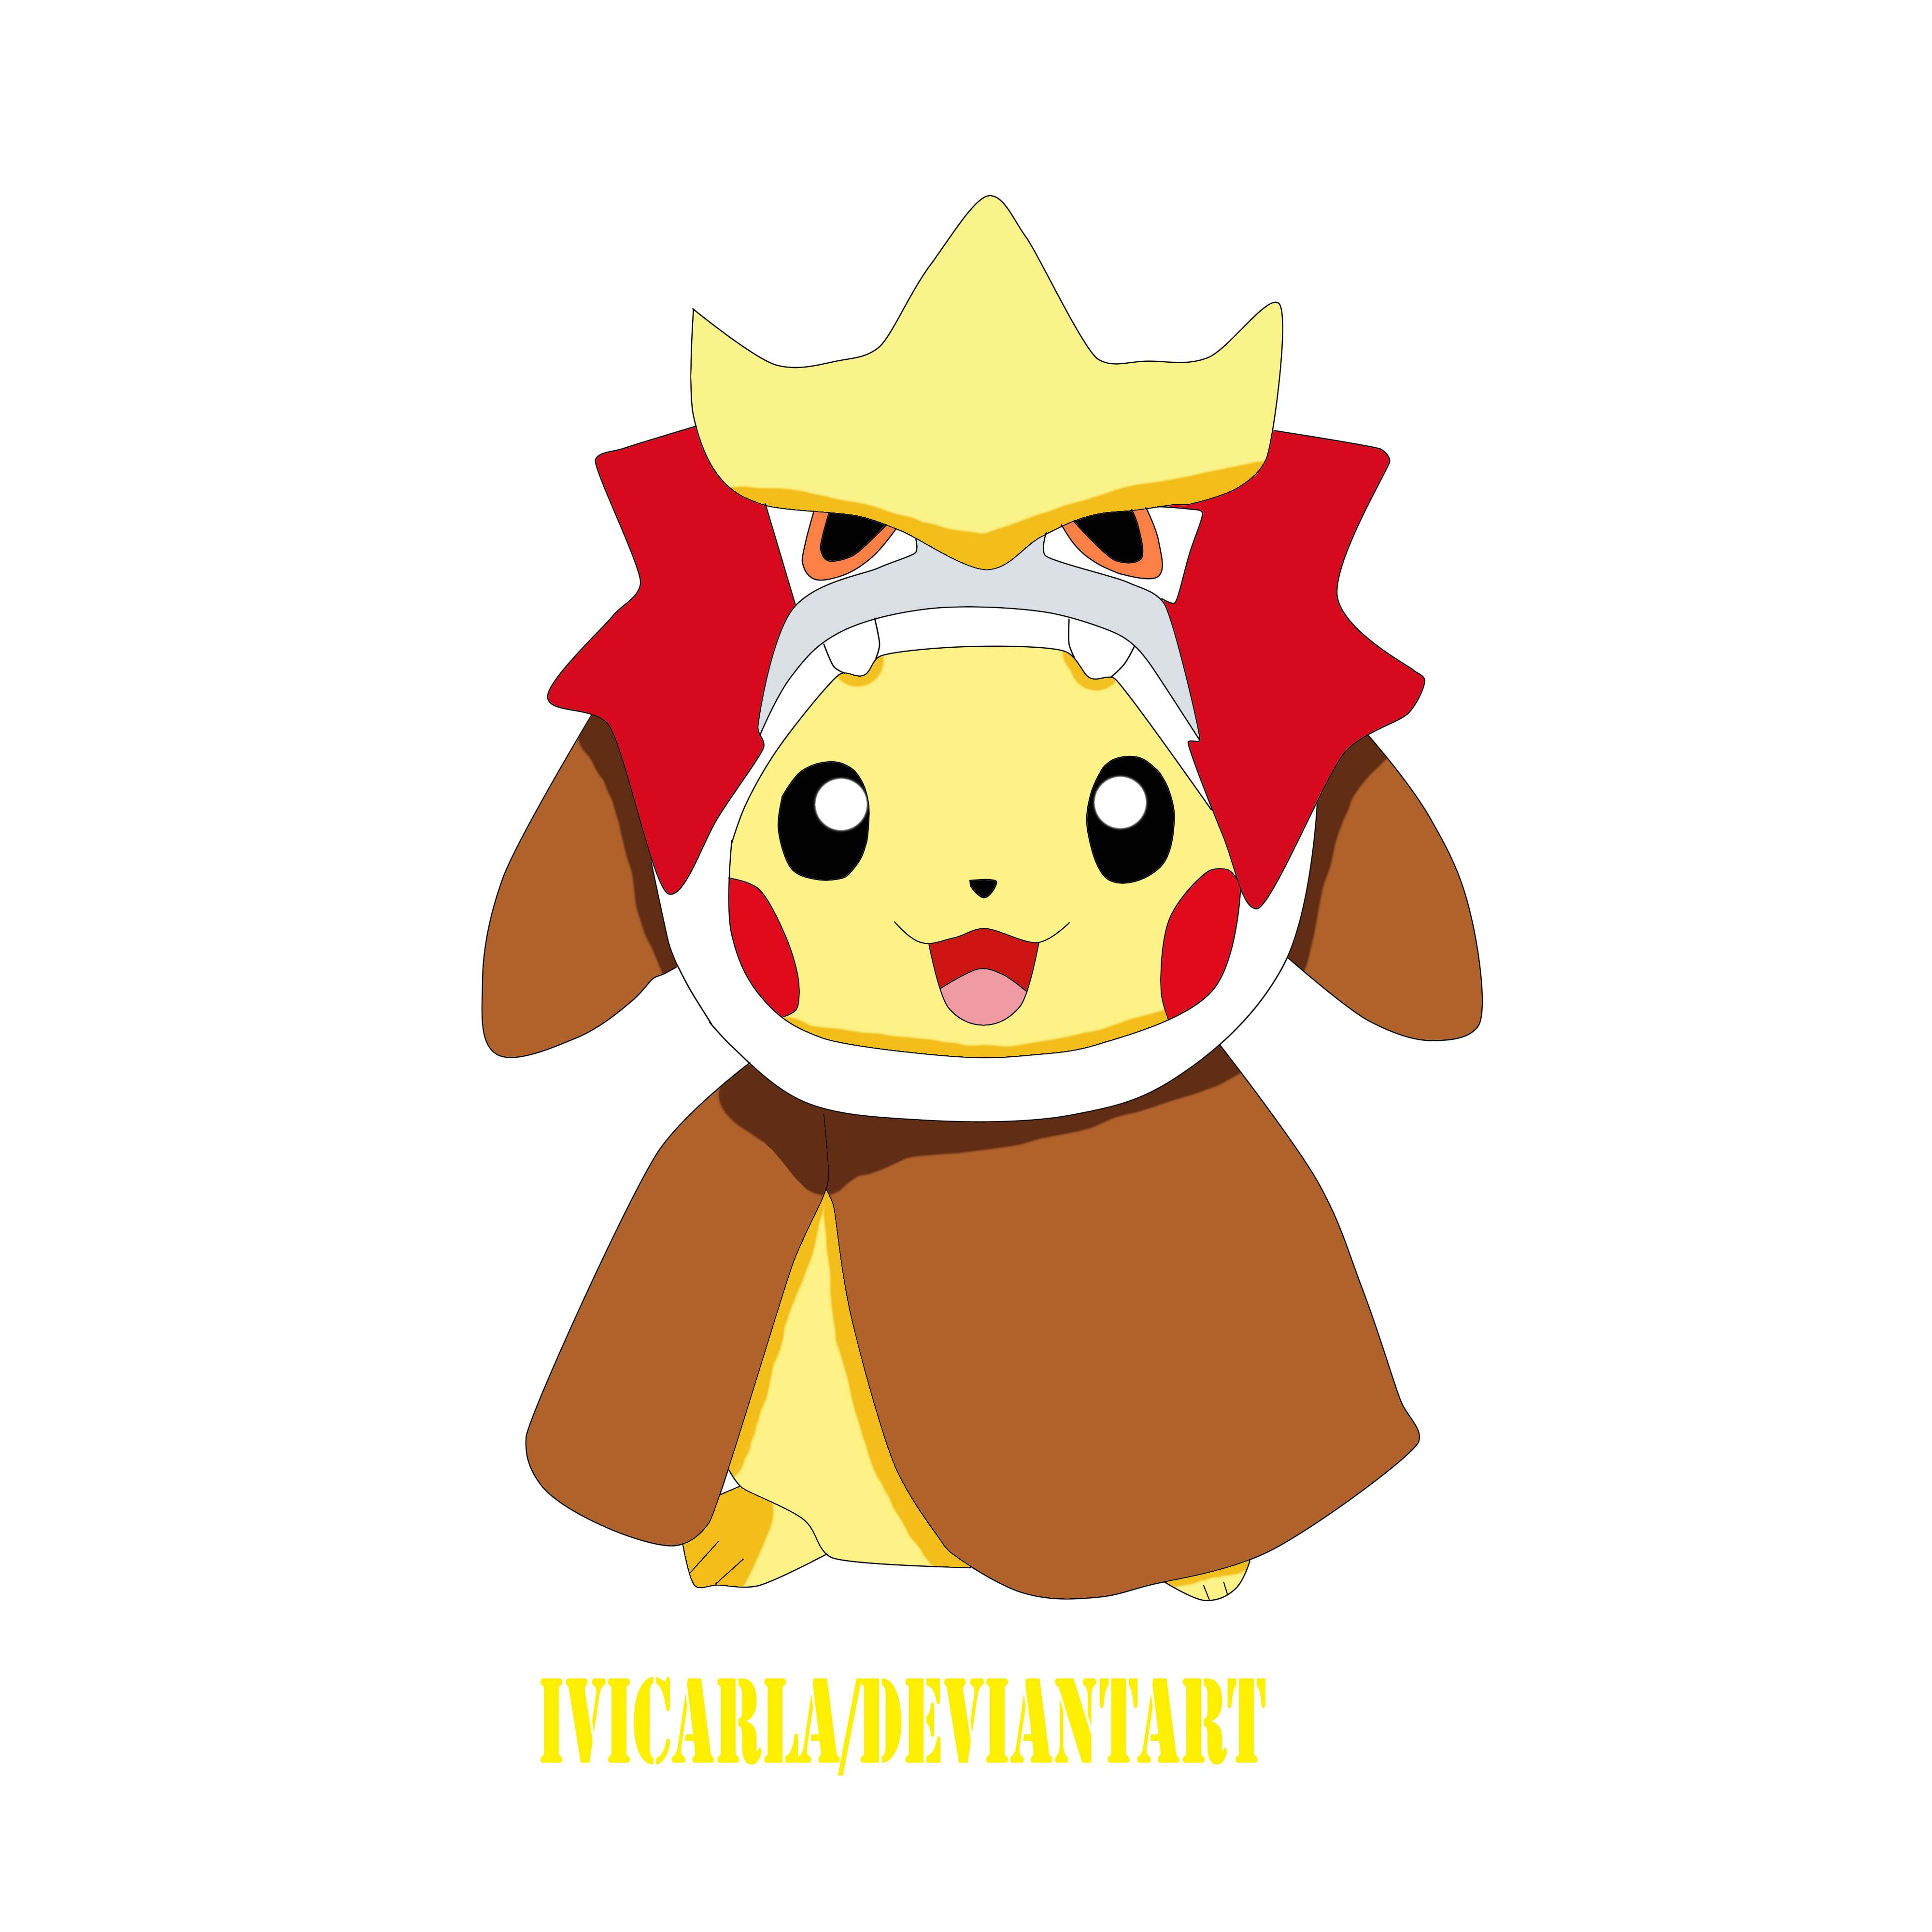 pokemon pikachu entei by ivicarla on deviantart